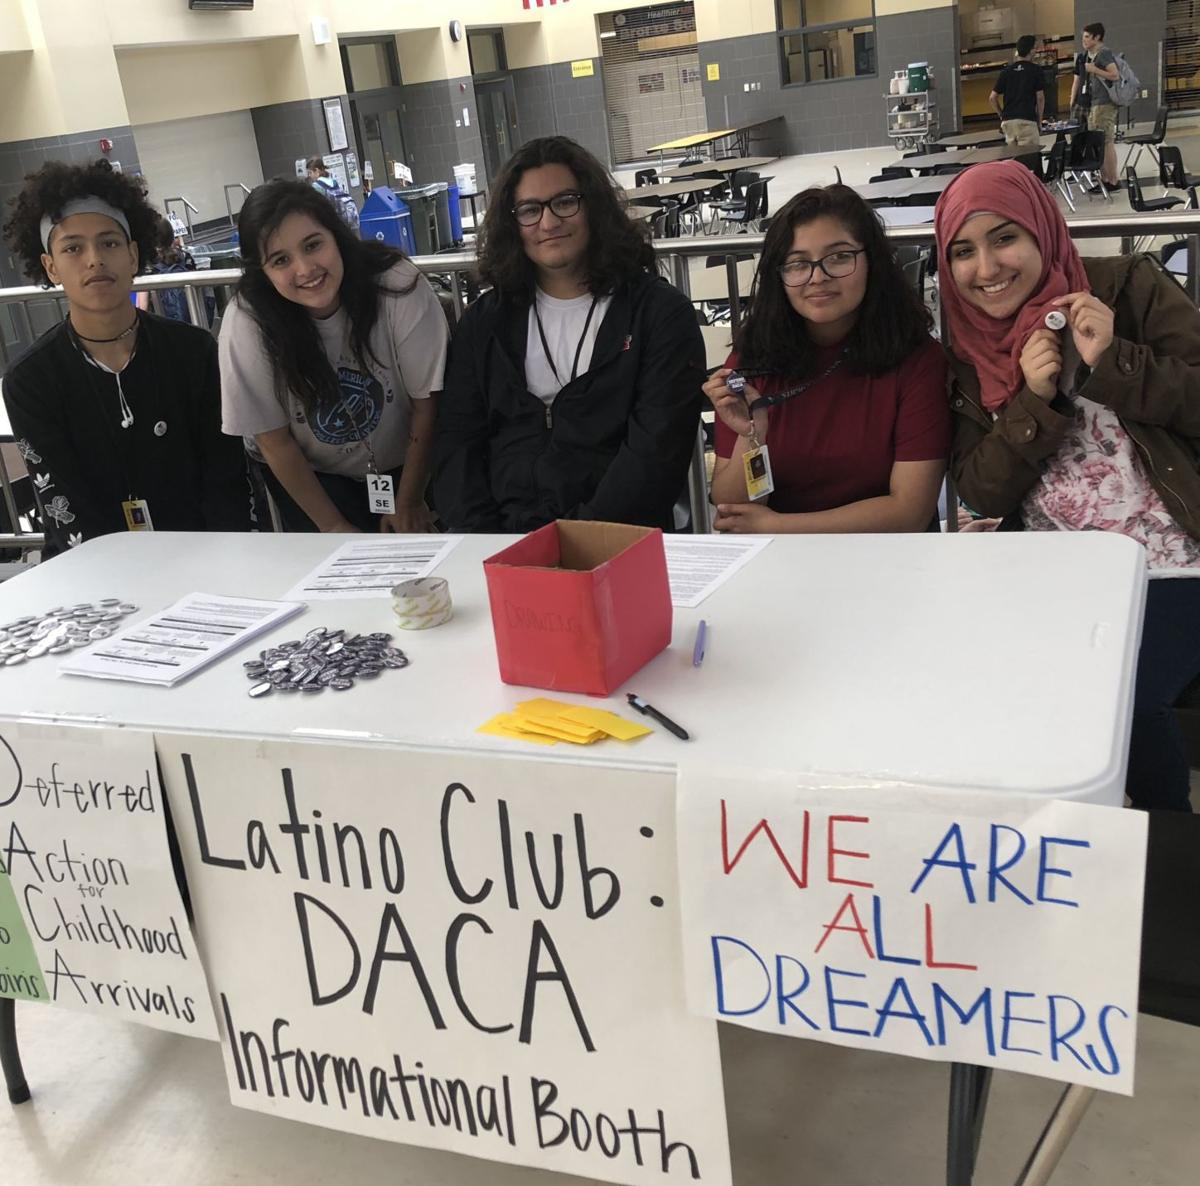 Southeast DACA information booth